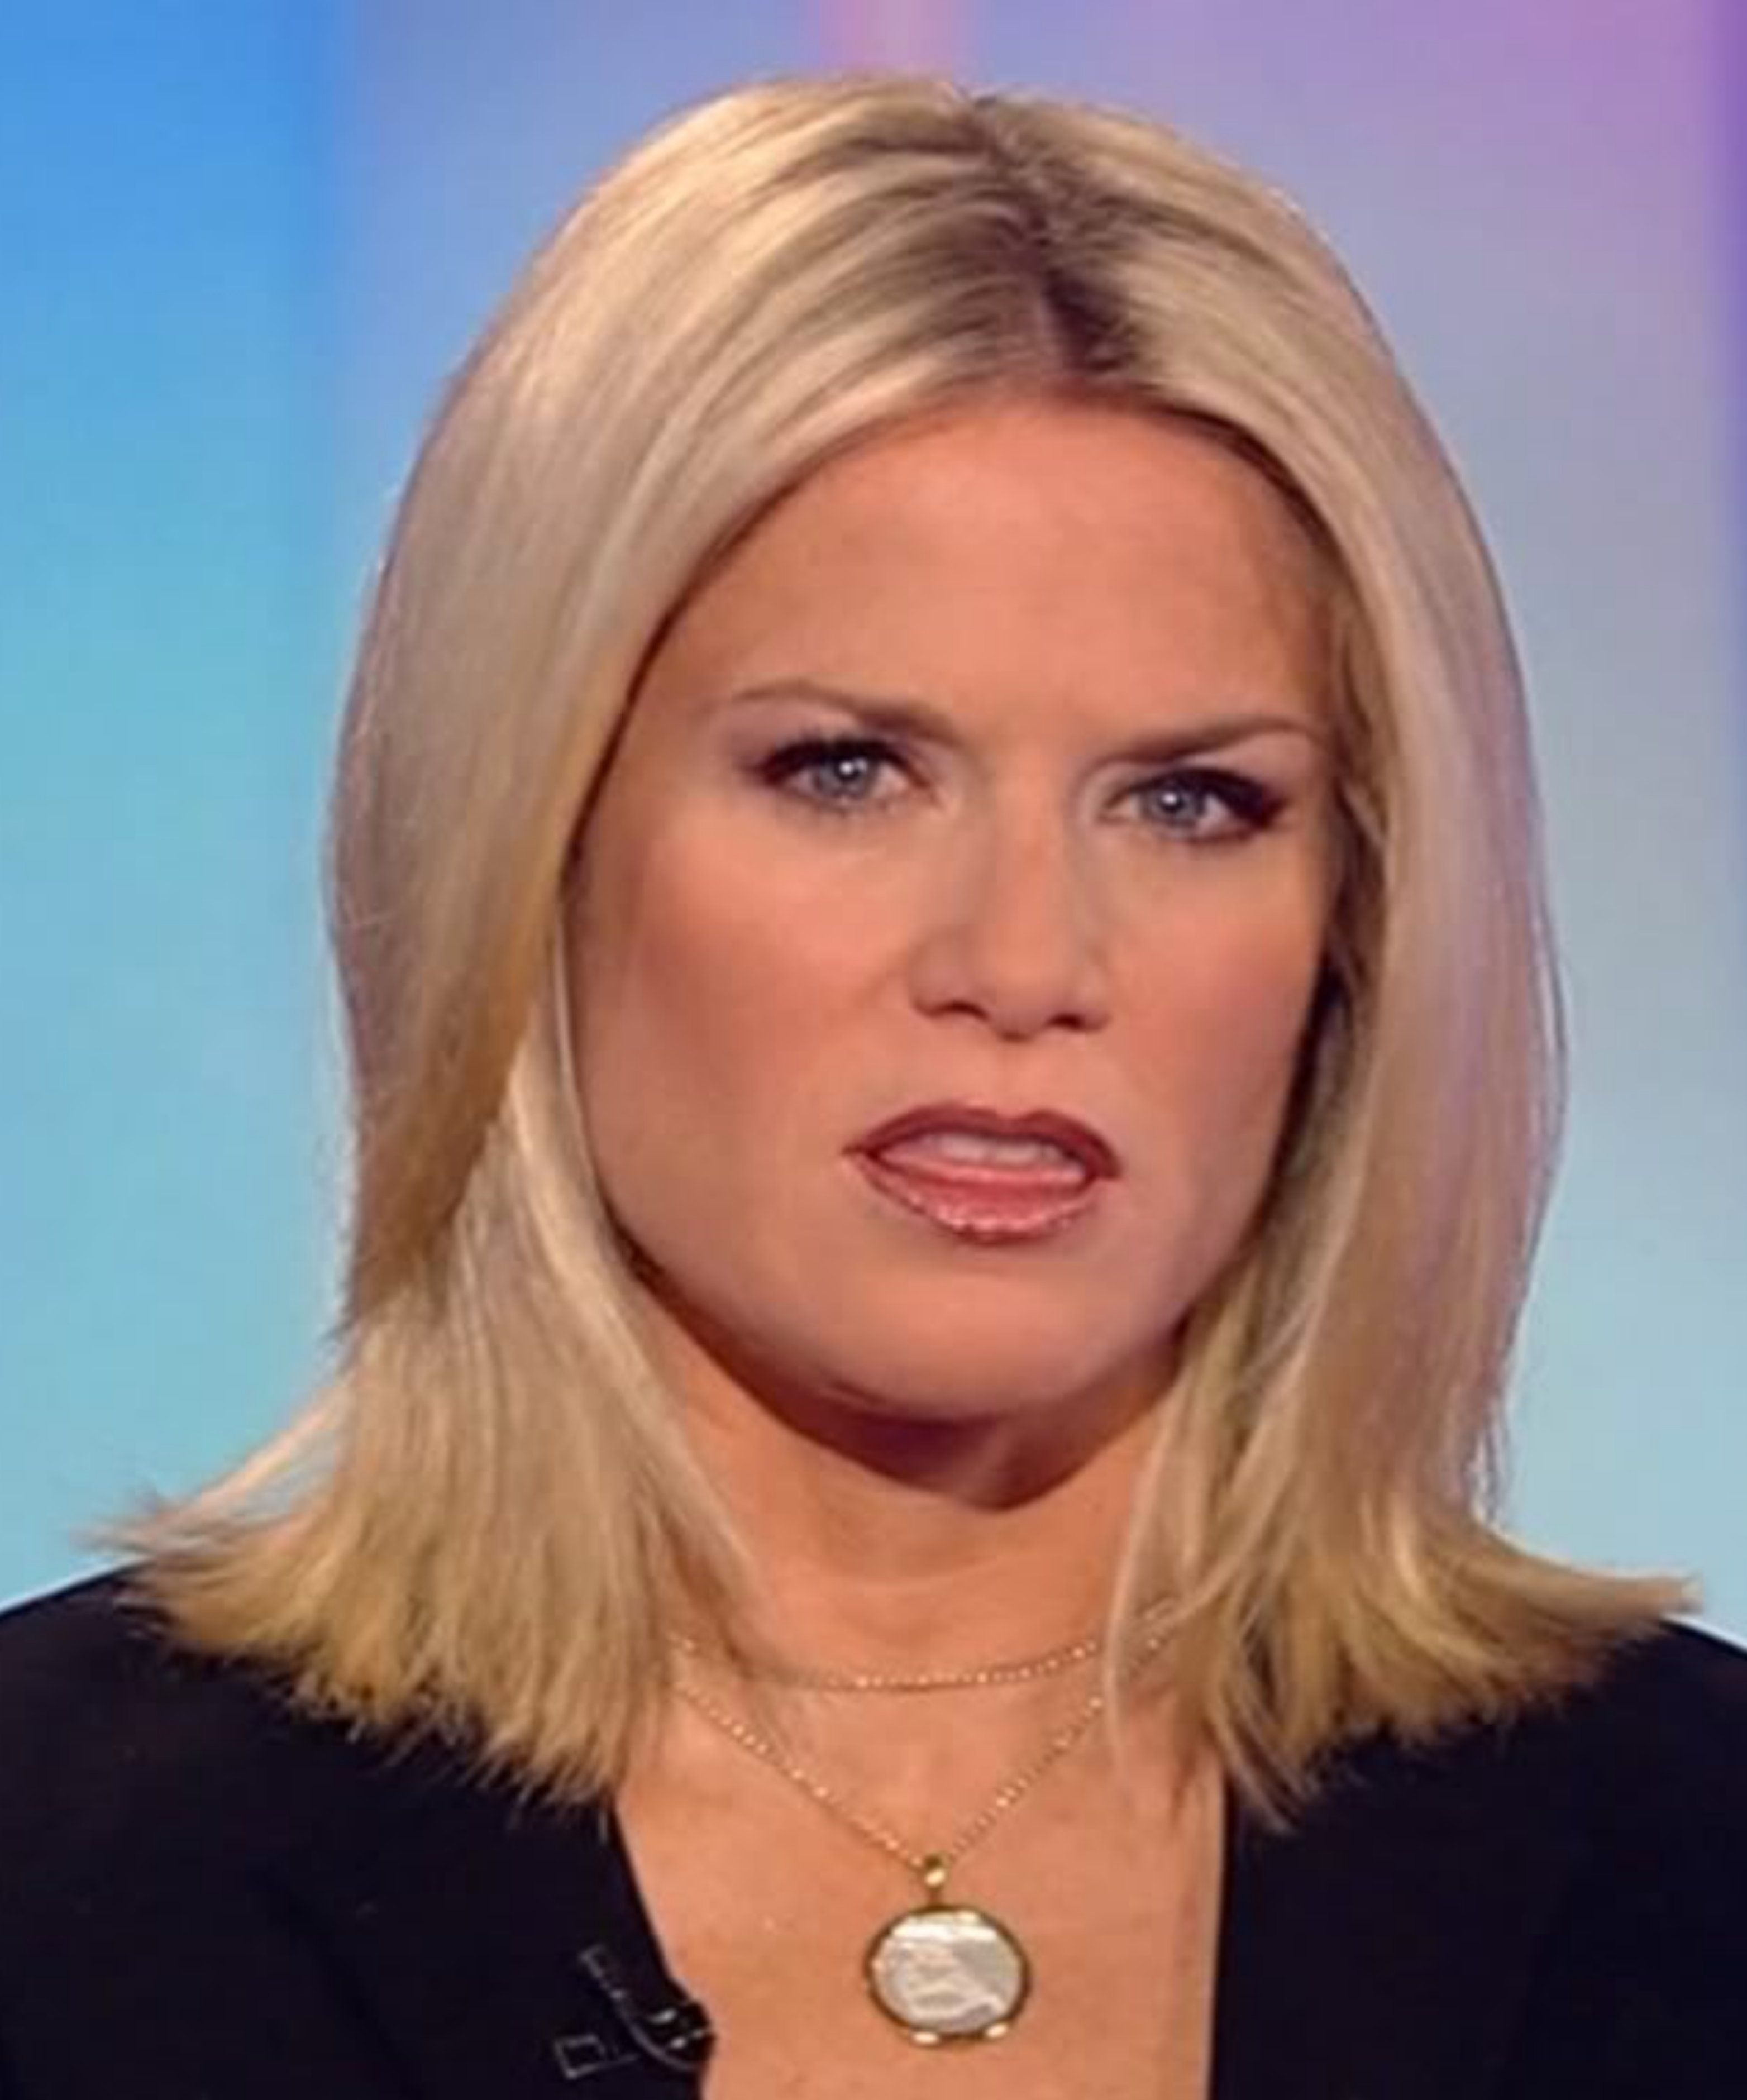 Pin by jeff rogers on Hairstyles Martha maccallum